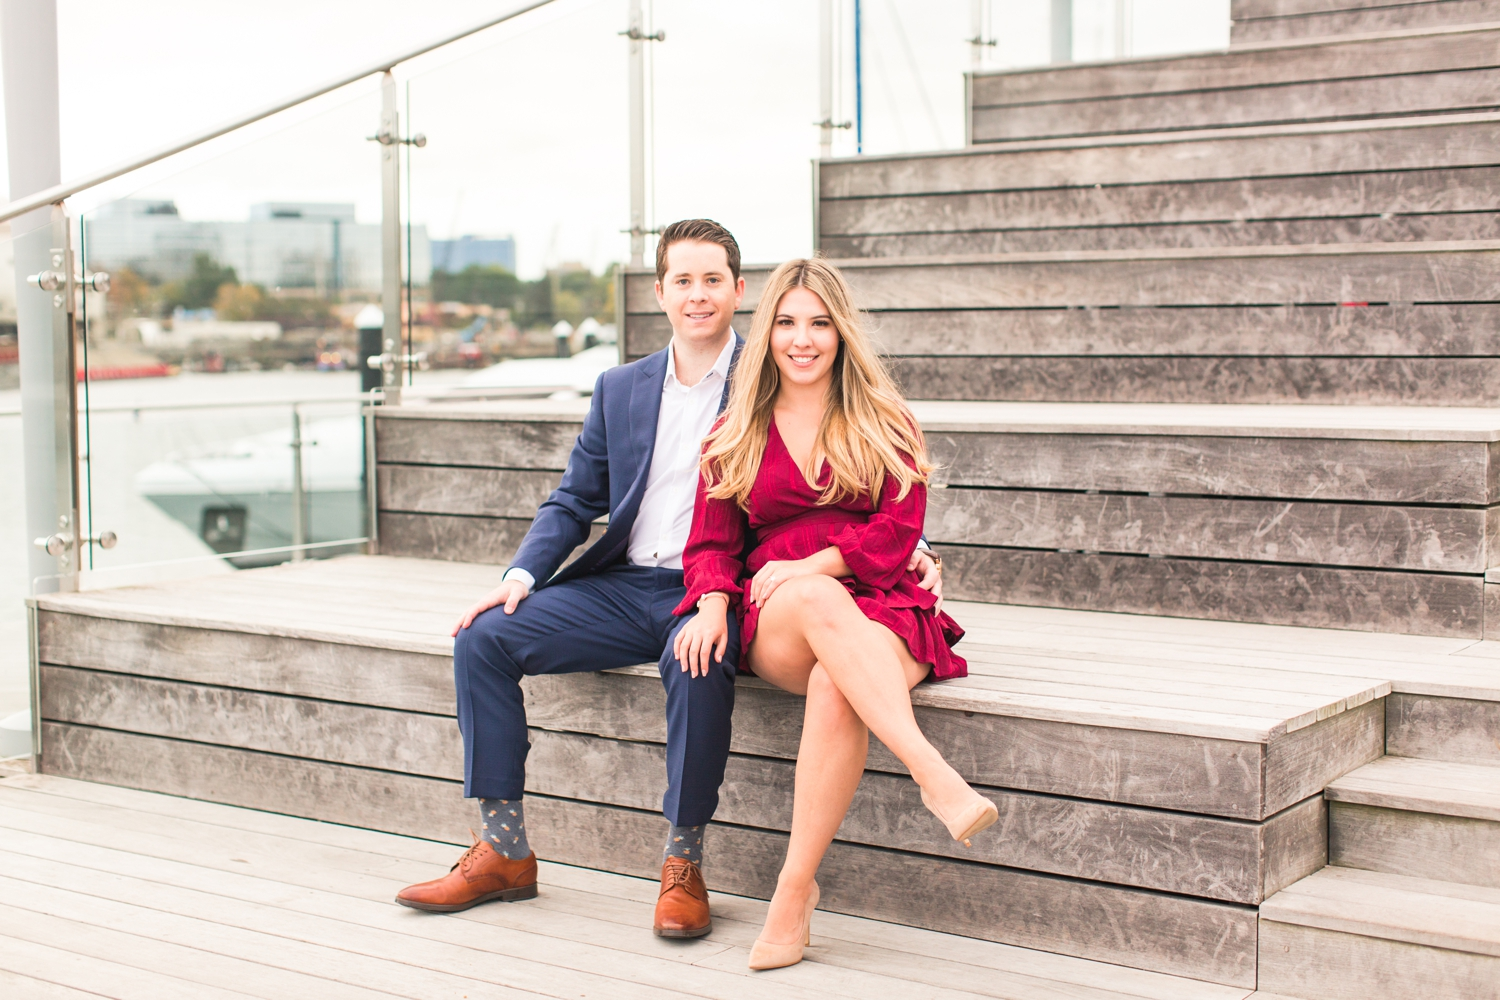 harbor-point-engagement-session-stamford-connecticut-wedding-photographer-rebecca-fred-shaina-lee-photography-photo